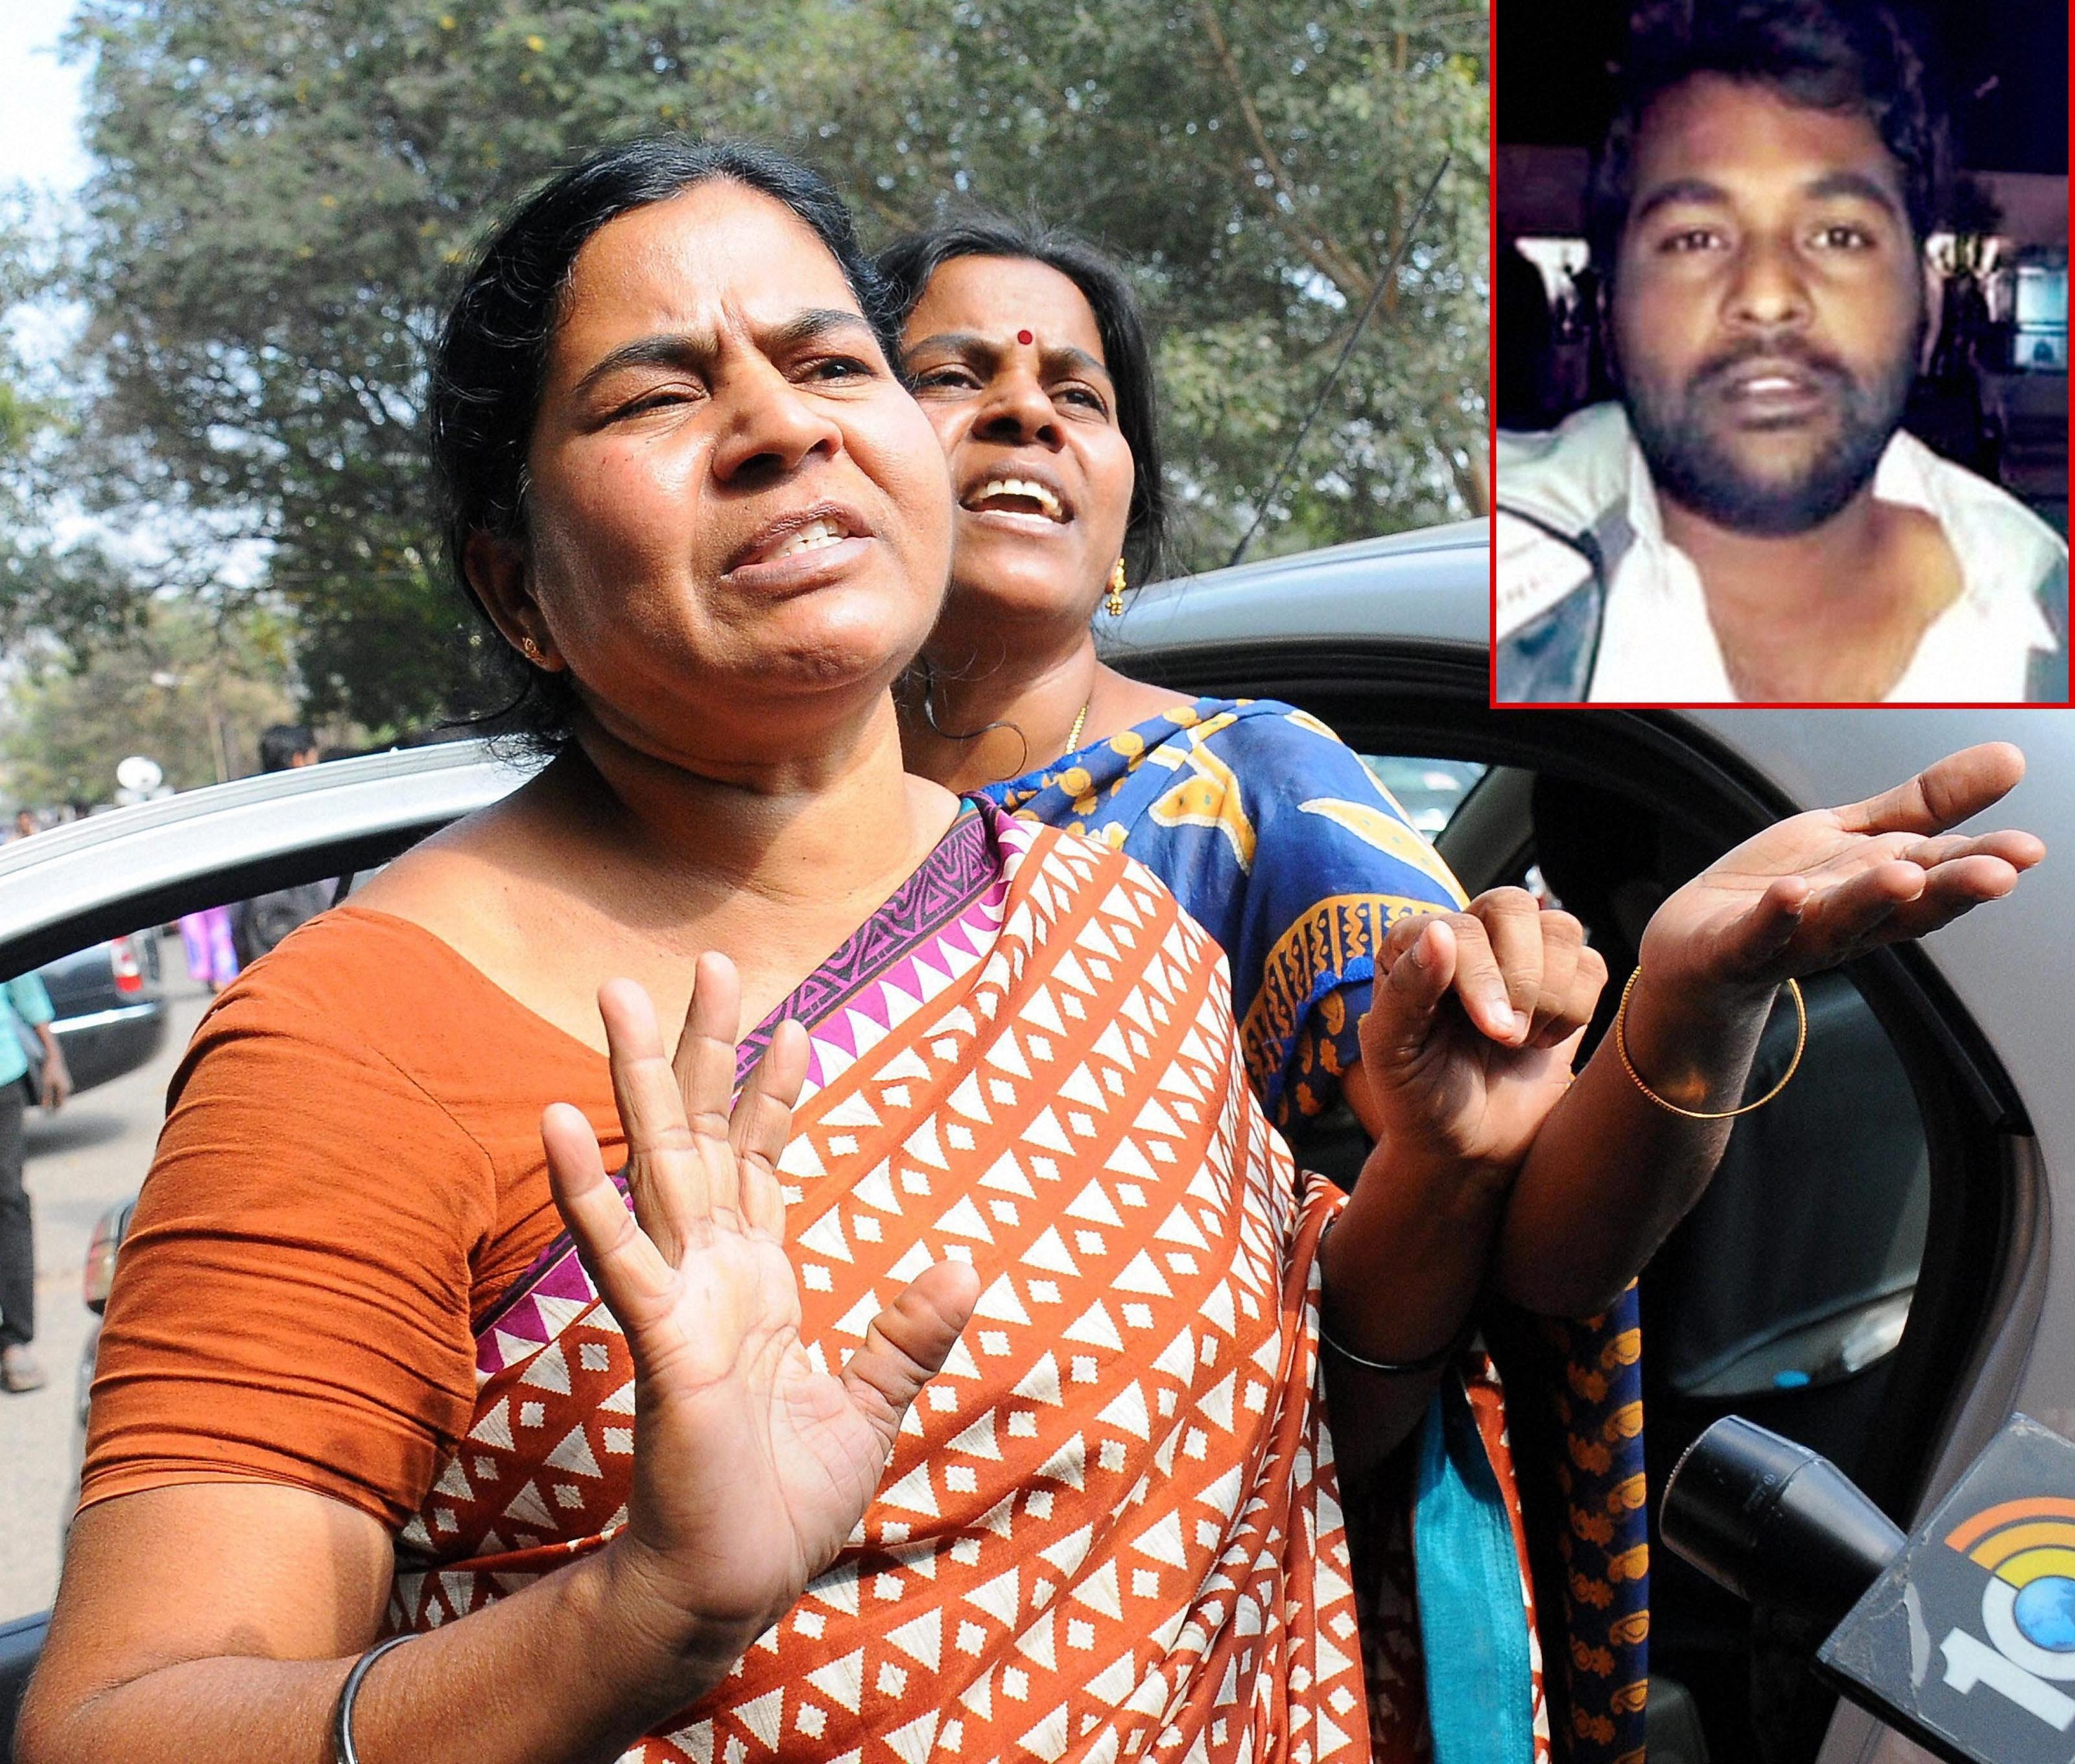 Hyderabad: Mother of Rohith Vemula (inset), a doctoral student at the Hyderabad Central University who was found hanging in a hostel room, speaking to media in Hyderabad on Monday. Credit: PTI